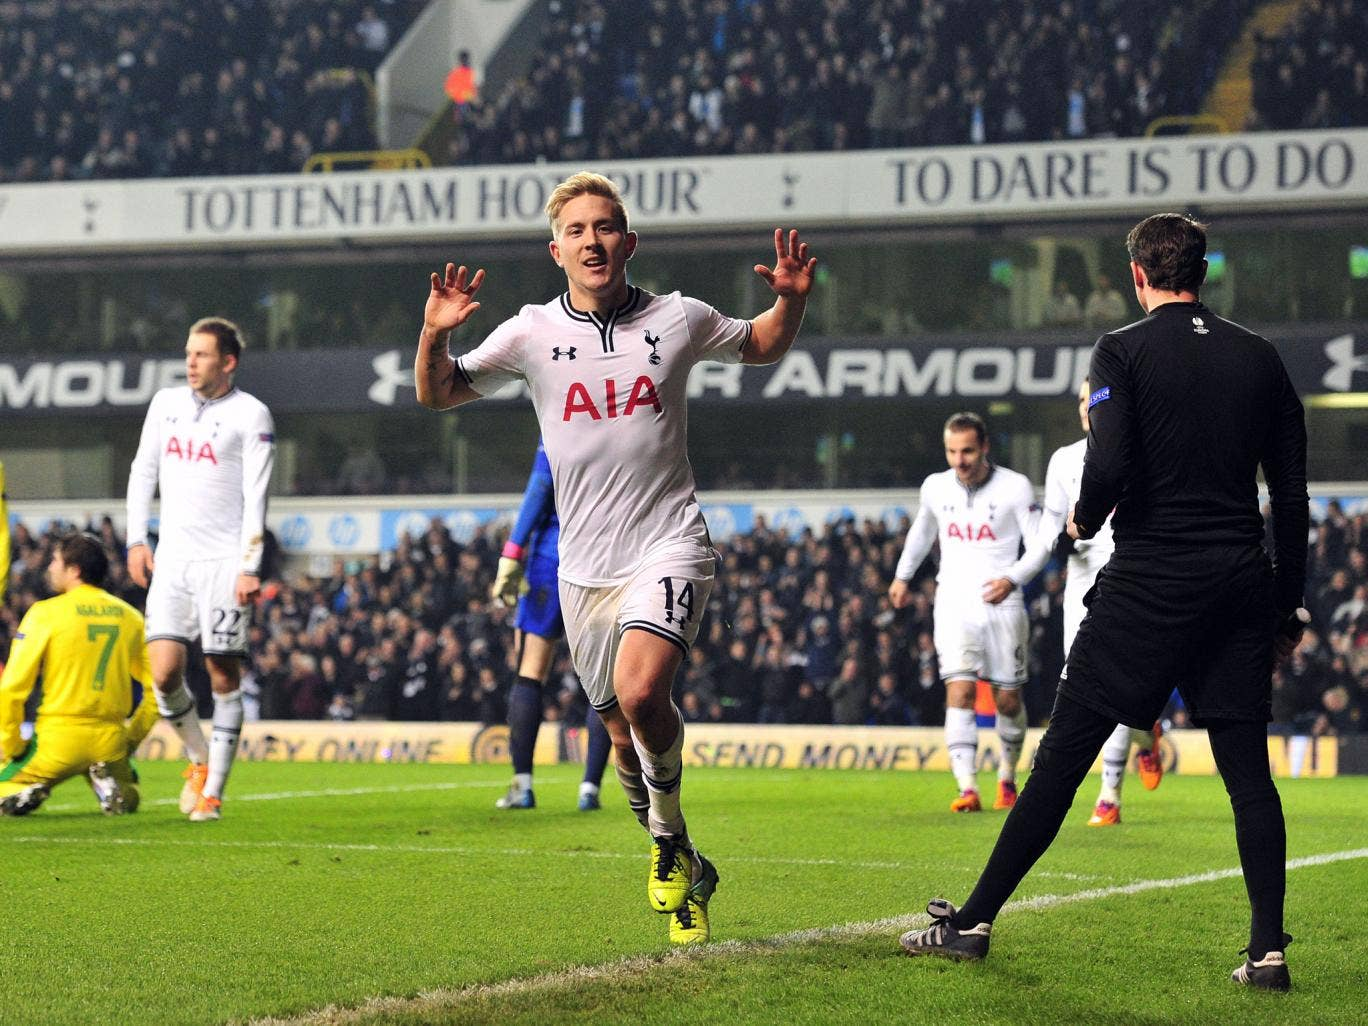 Tottenham midfielder Lewis Holtby could return to his former club Schalke